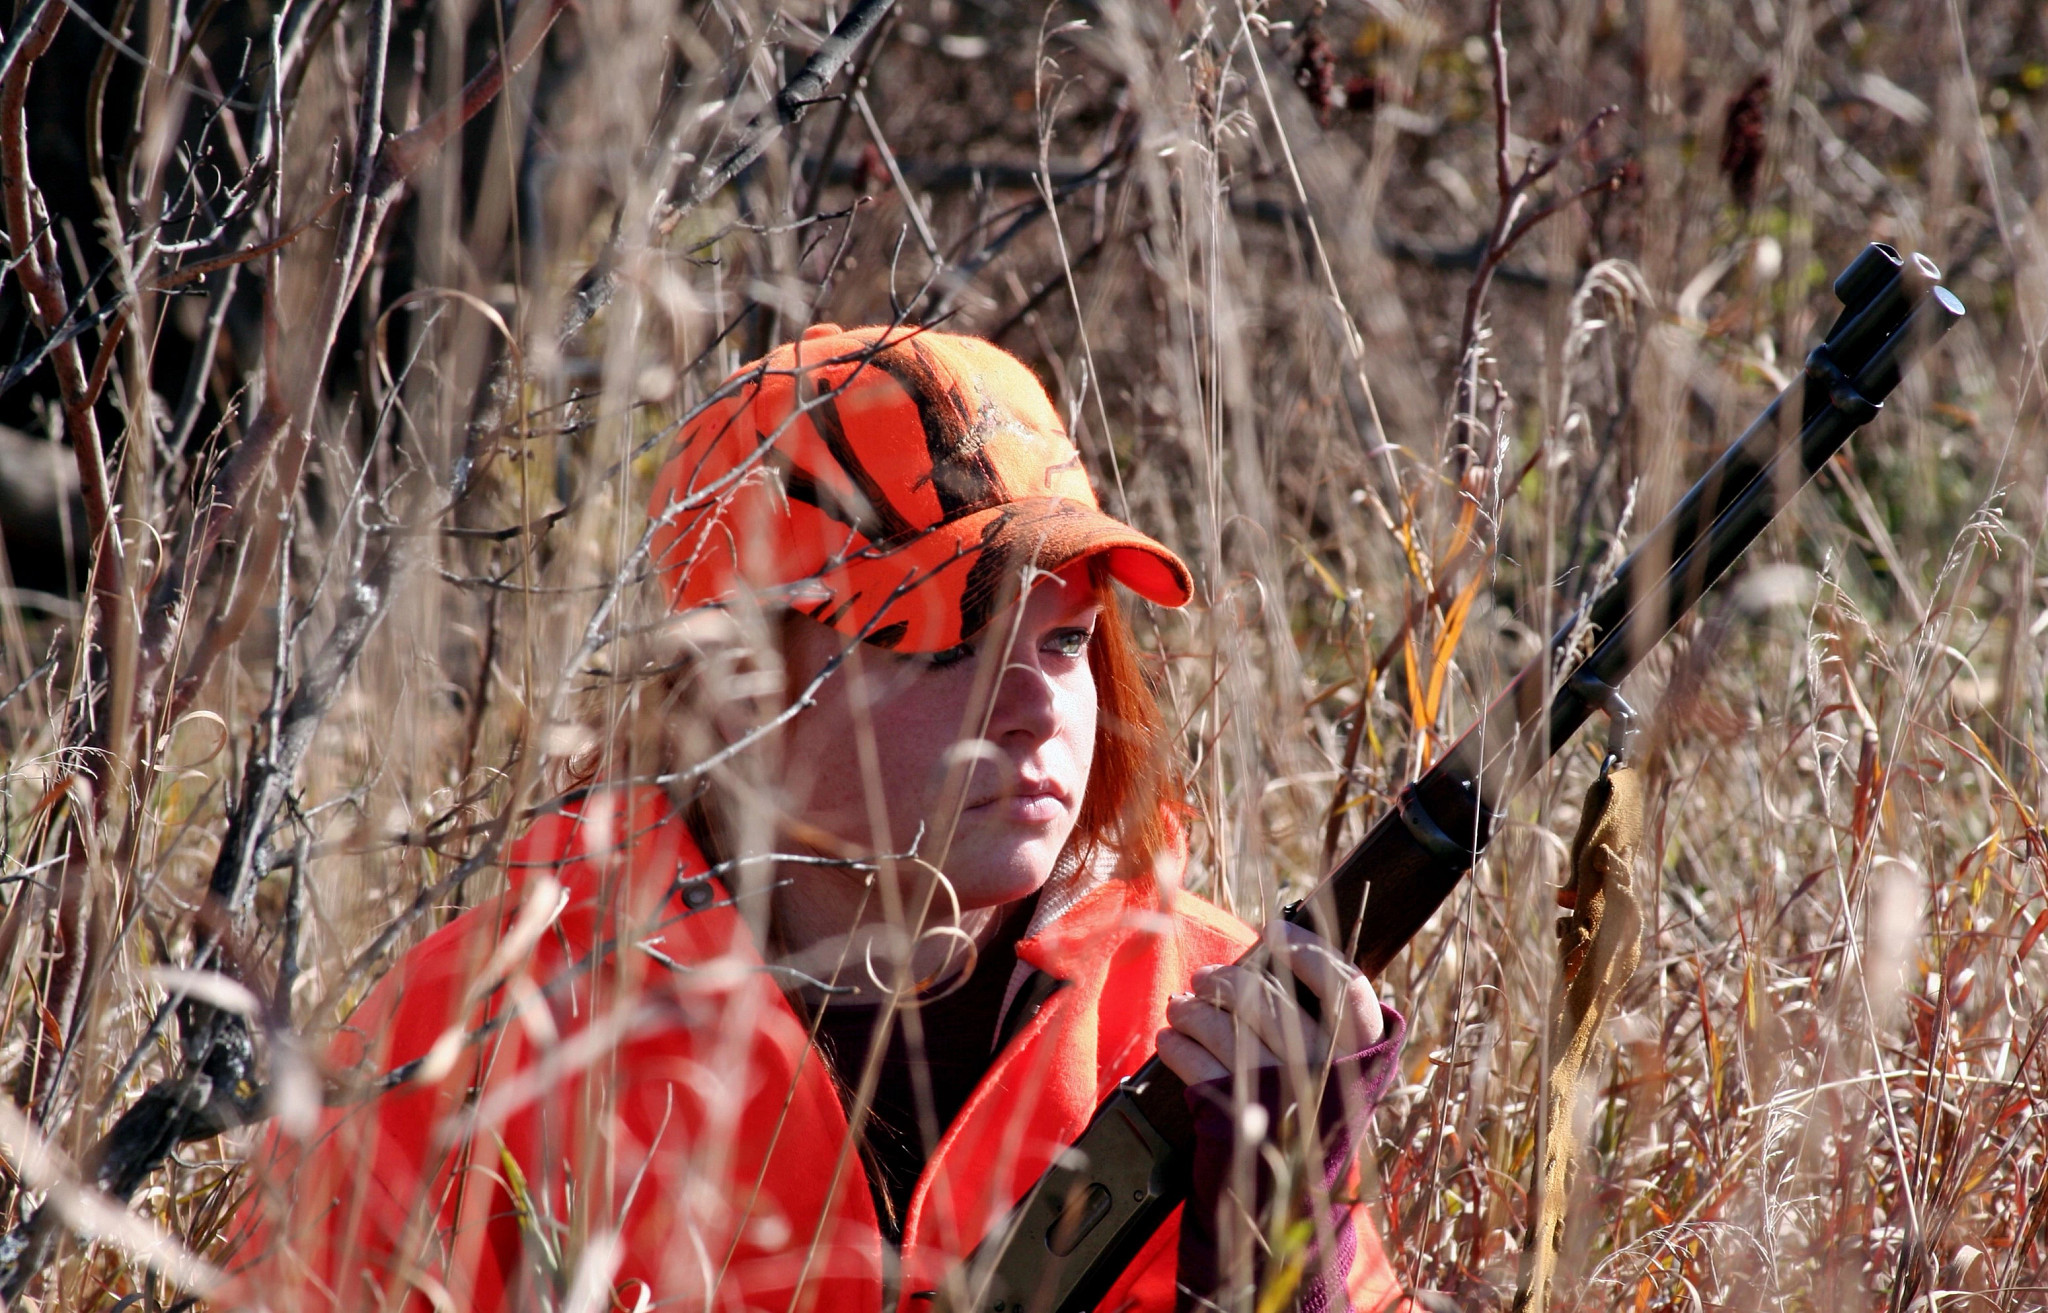 A woman hunting in a field.